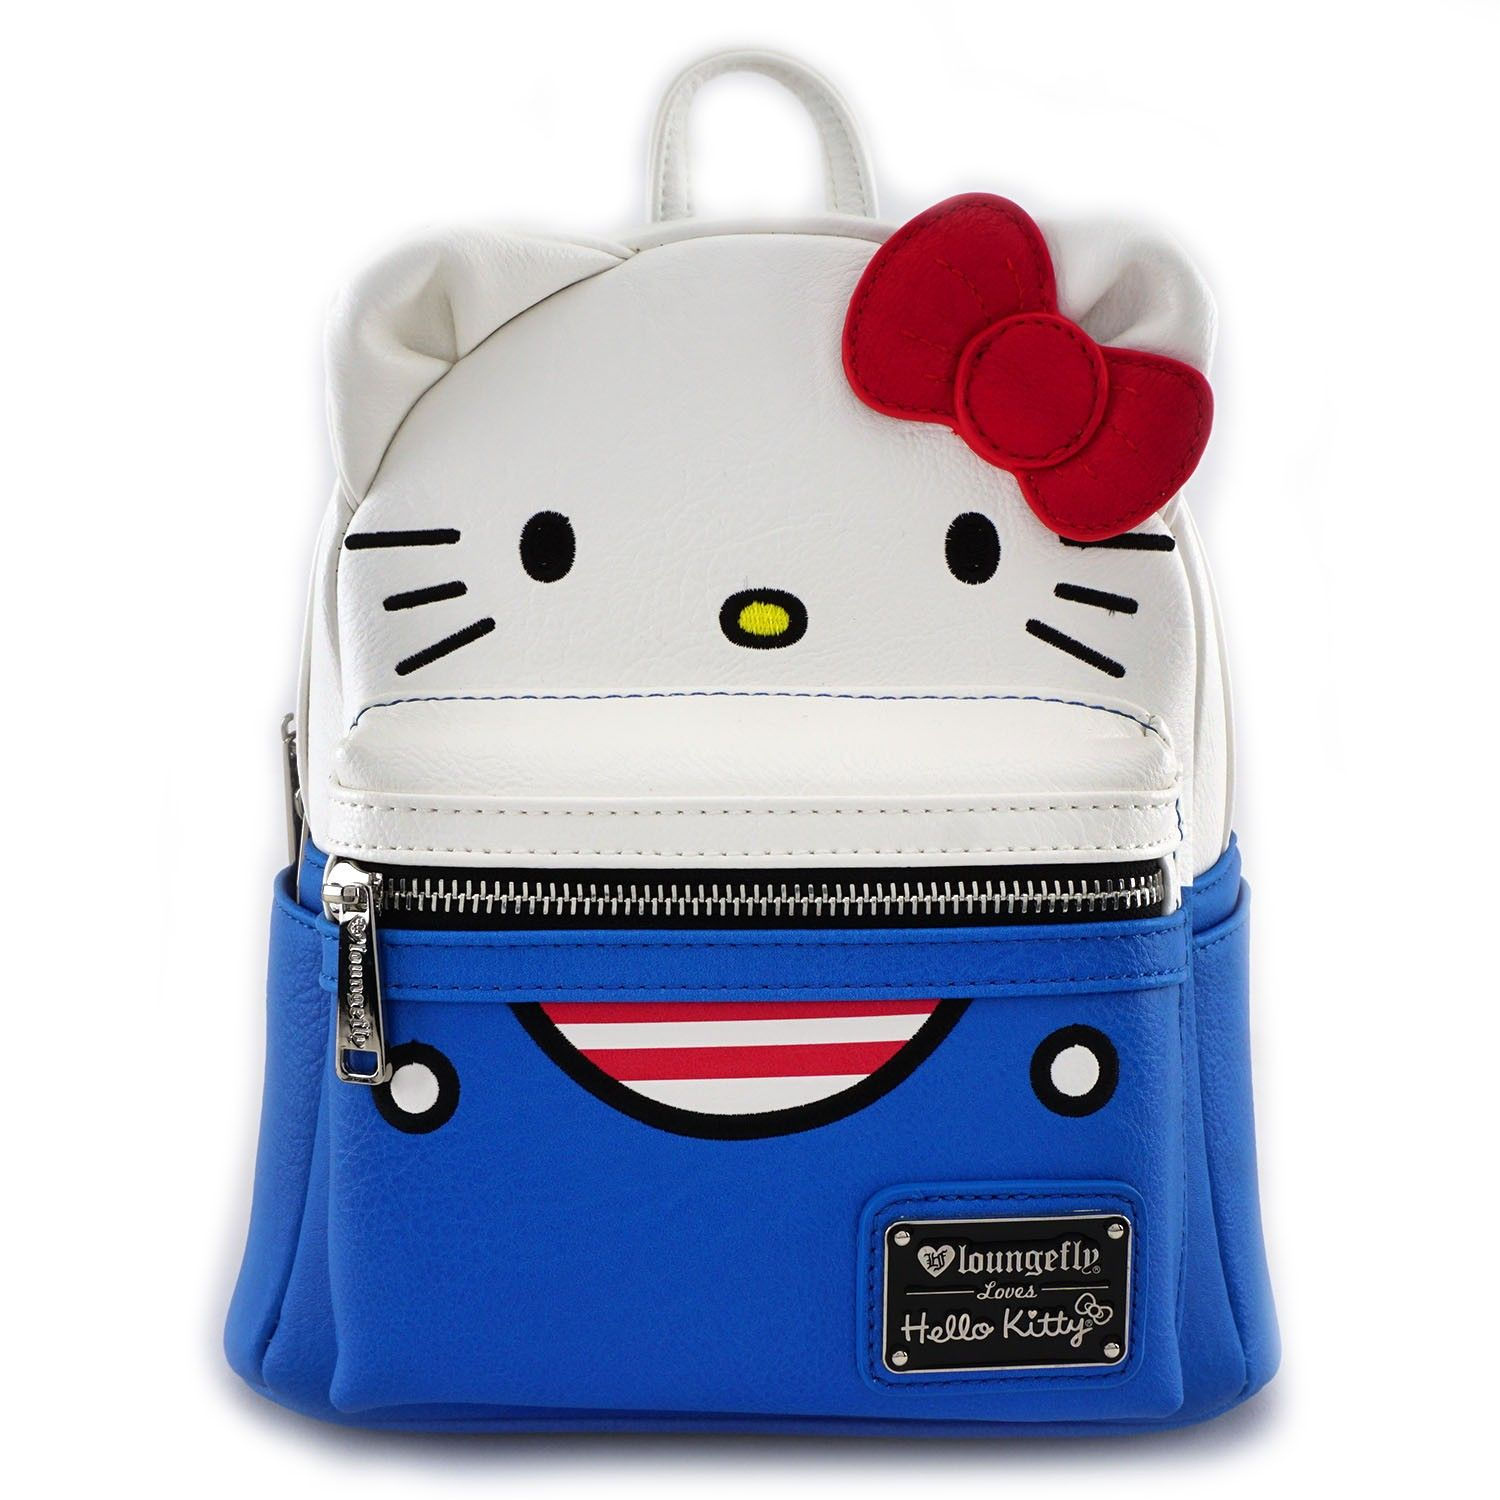 3d4c6271b621 Loungefly x Hello Kitty Overalls Mini Faux Leather Backpack - Hello Sanrio  - Brands